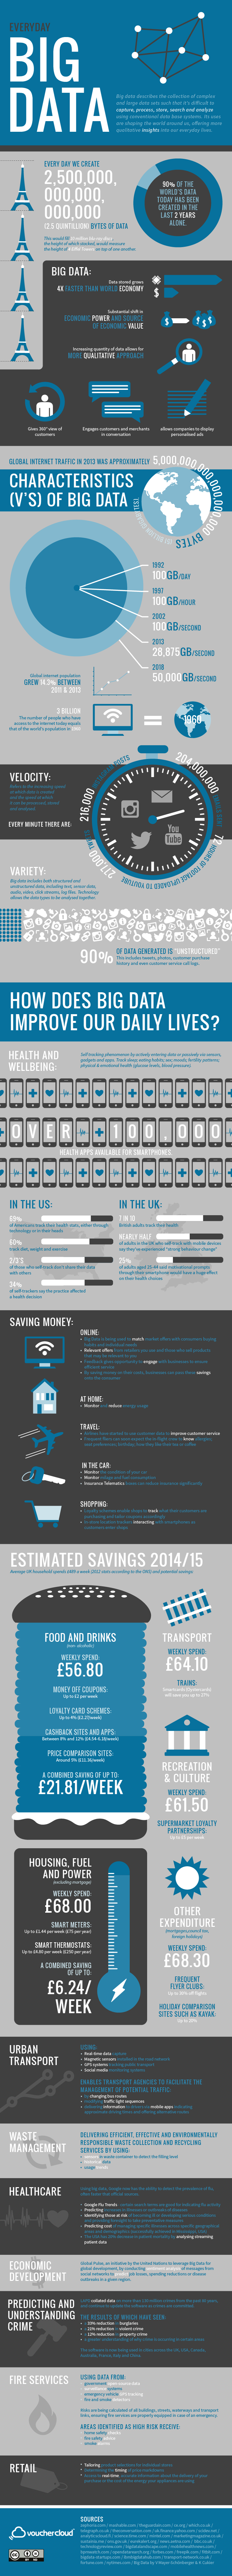 infografia big data para ecommerce